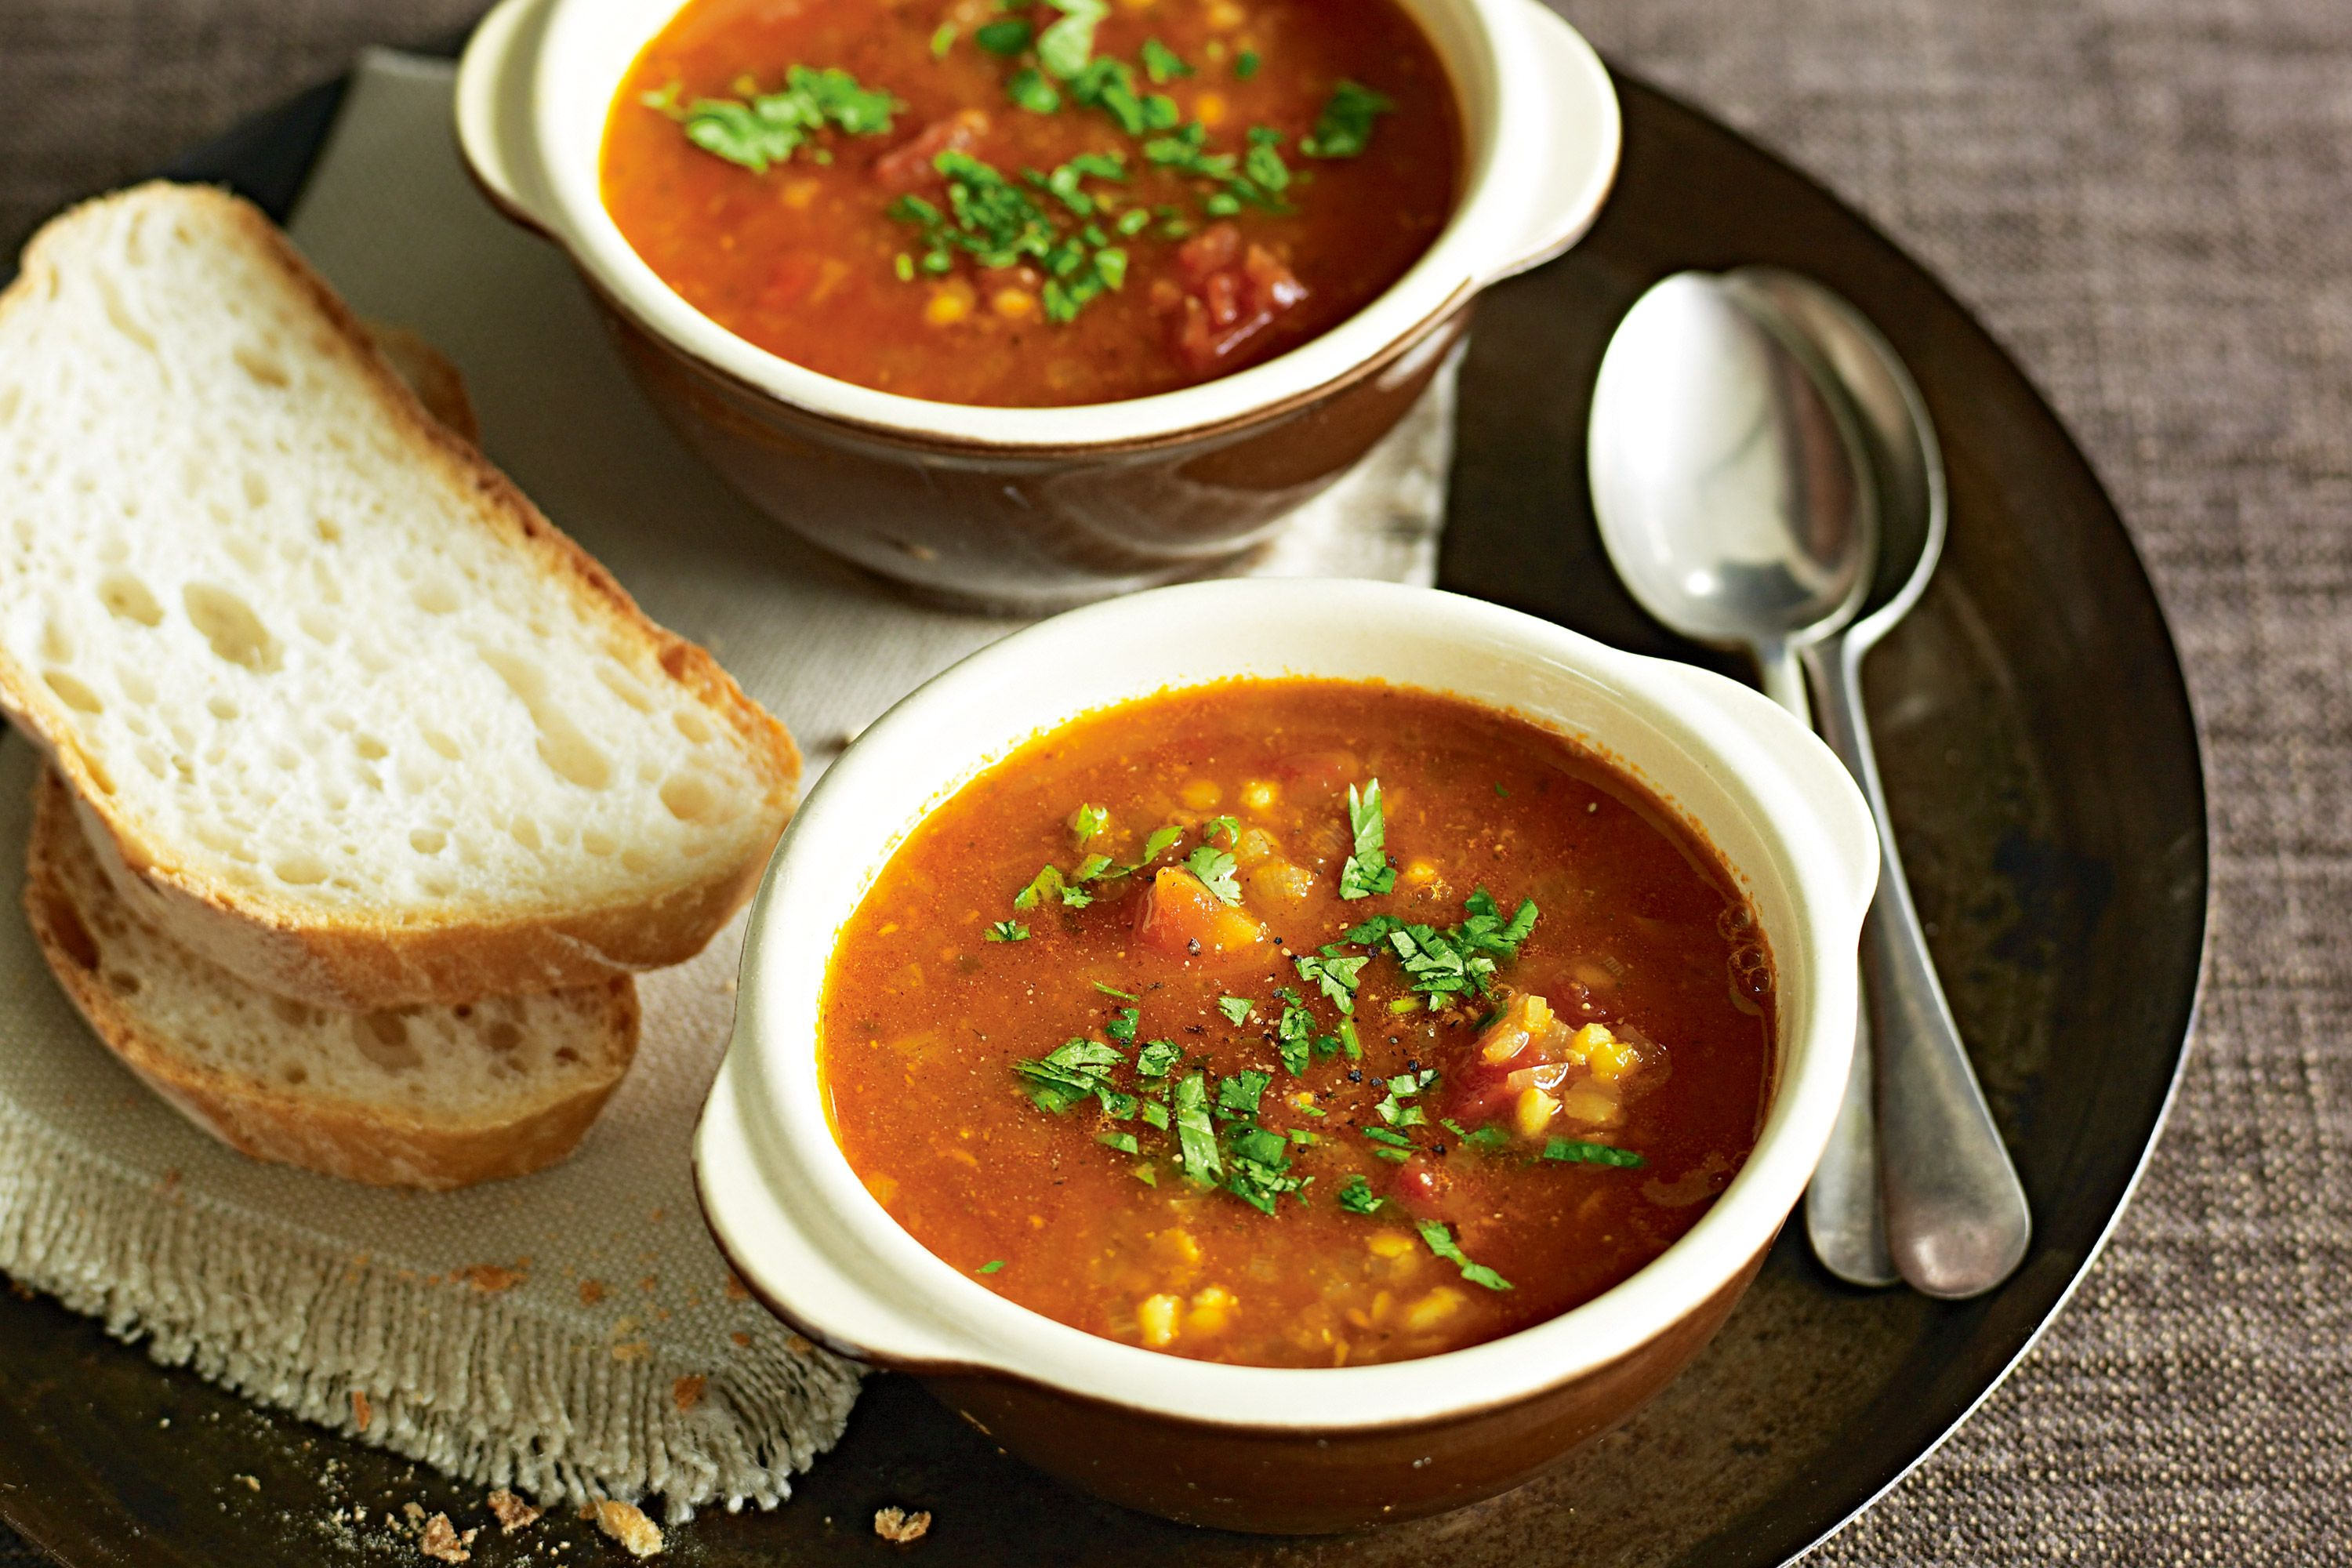 12 best exotic chicken soups for shabbat images on pinterest 12 best exotic chicken soups for shabbat images on pinterest chicken soups chicken soup recipes and soups forumfinder Gallery